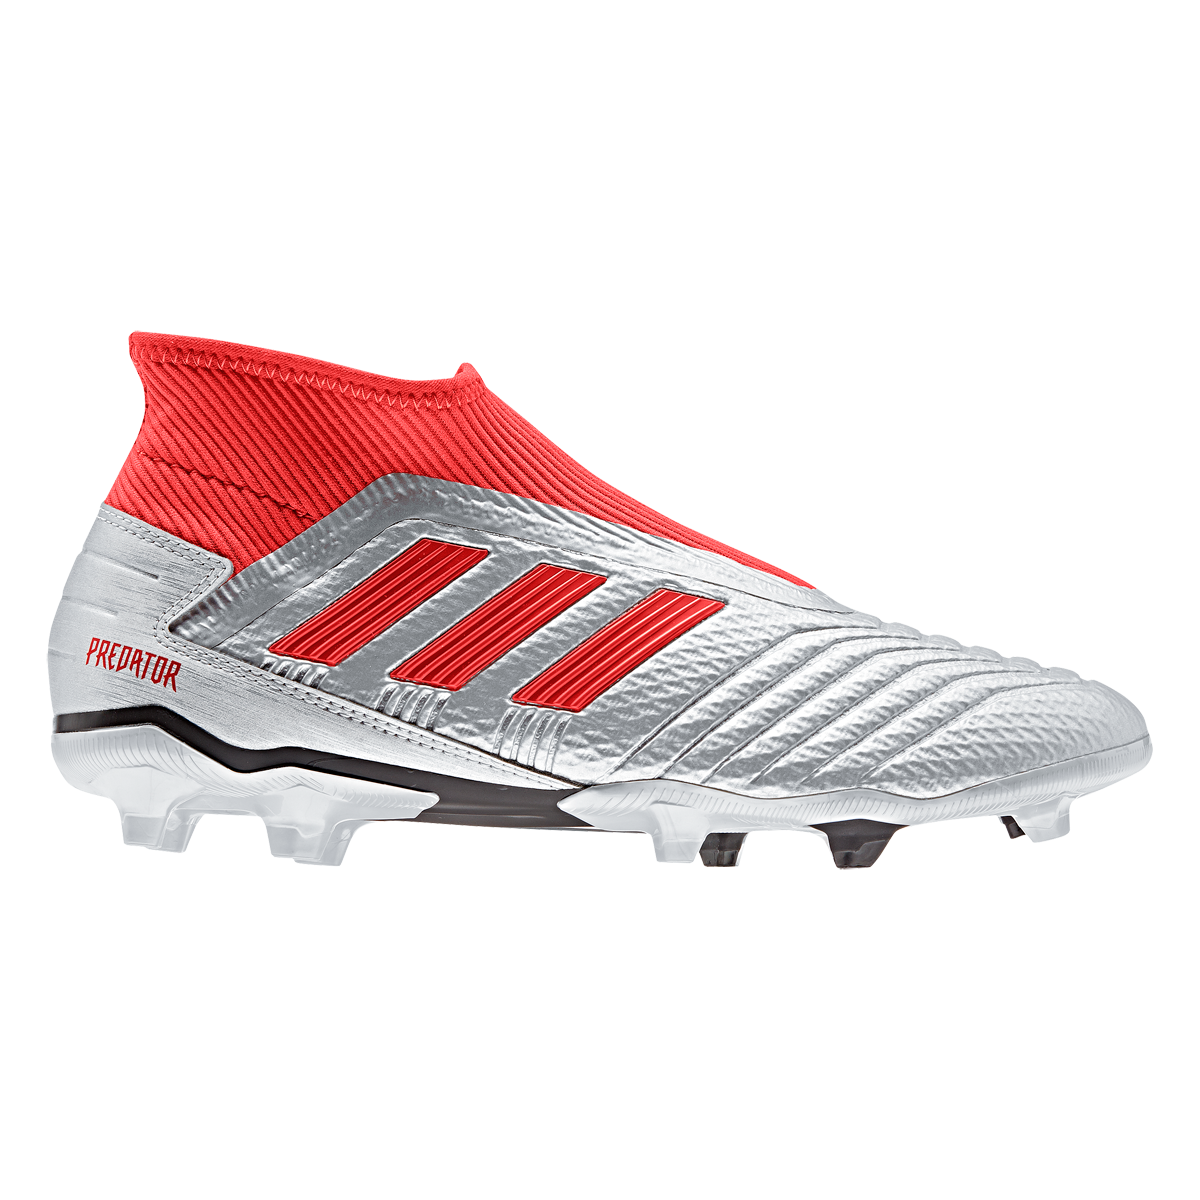 Adidas Predator 19 3 Laceless Fg Soccer Cleat Metallic Silver Black Hi Res Red 11 5 Metallic Silver And Black Adidas Predator Soccer Shoes